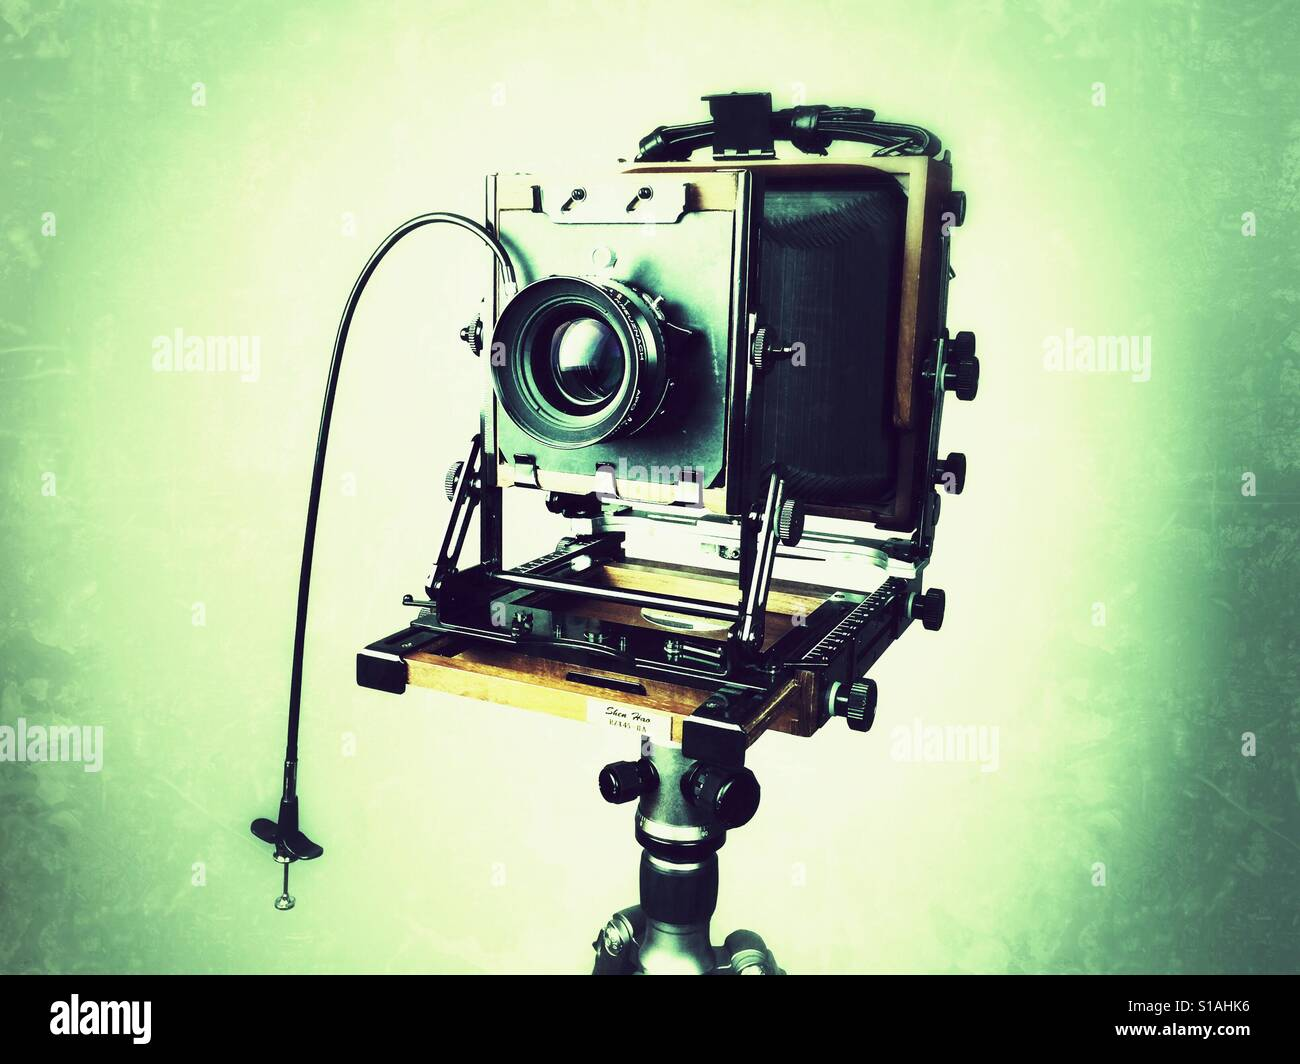 Modern large format film camera - Stock Image